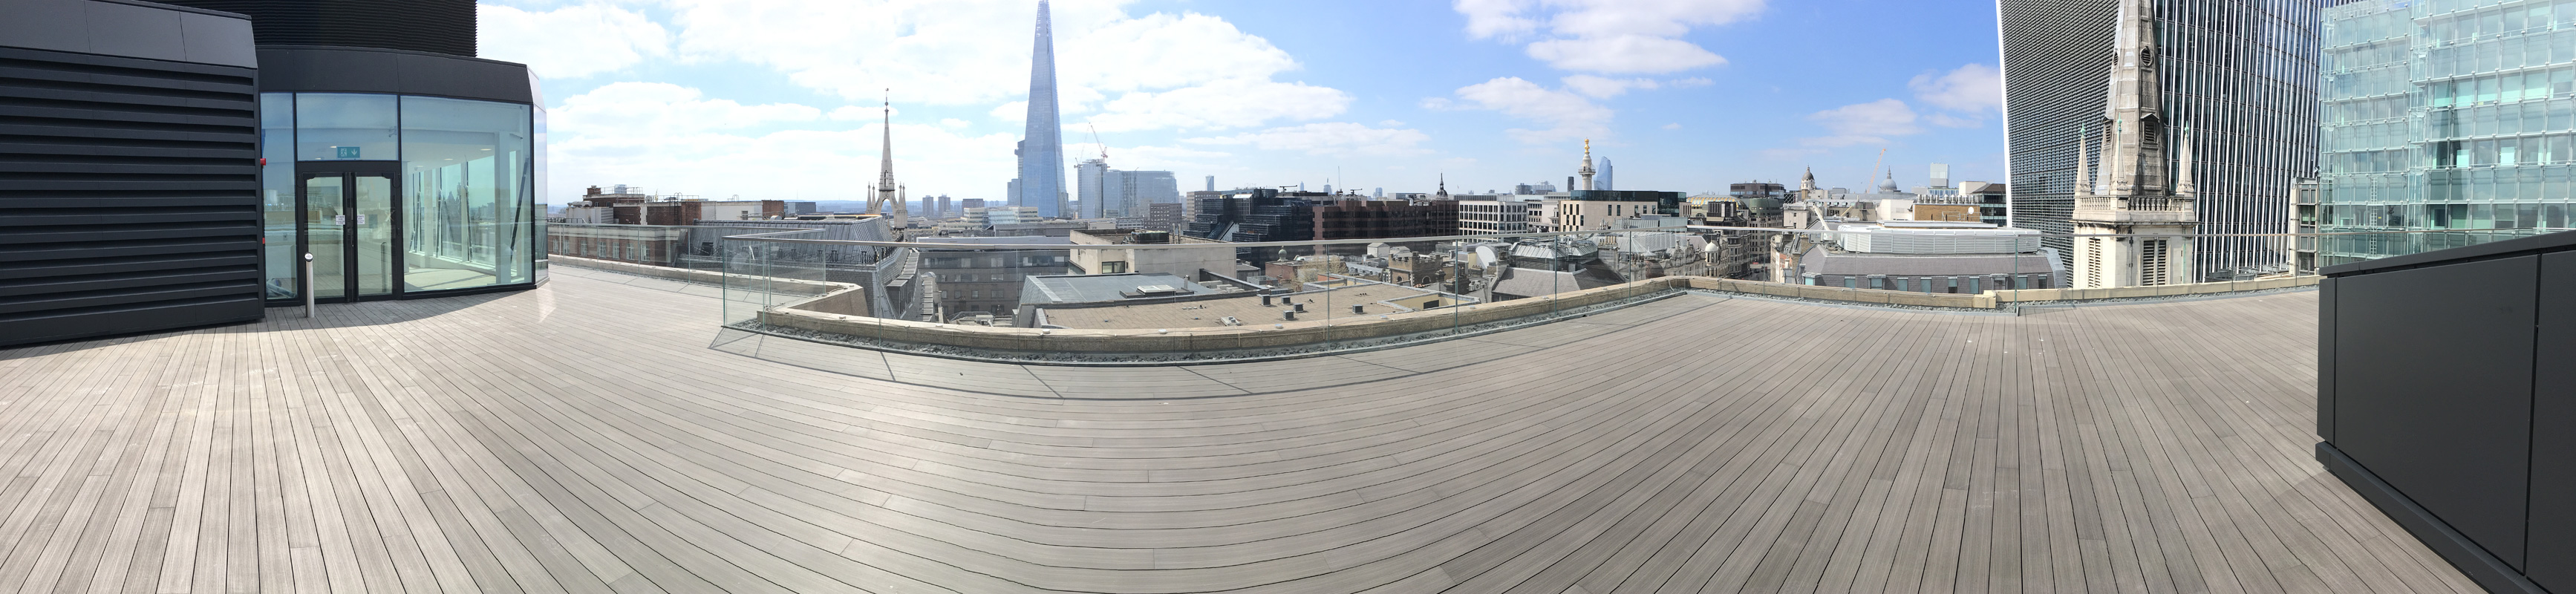 A panoramic image of an iDecking installation at Eastcheap, London